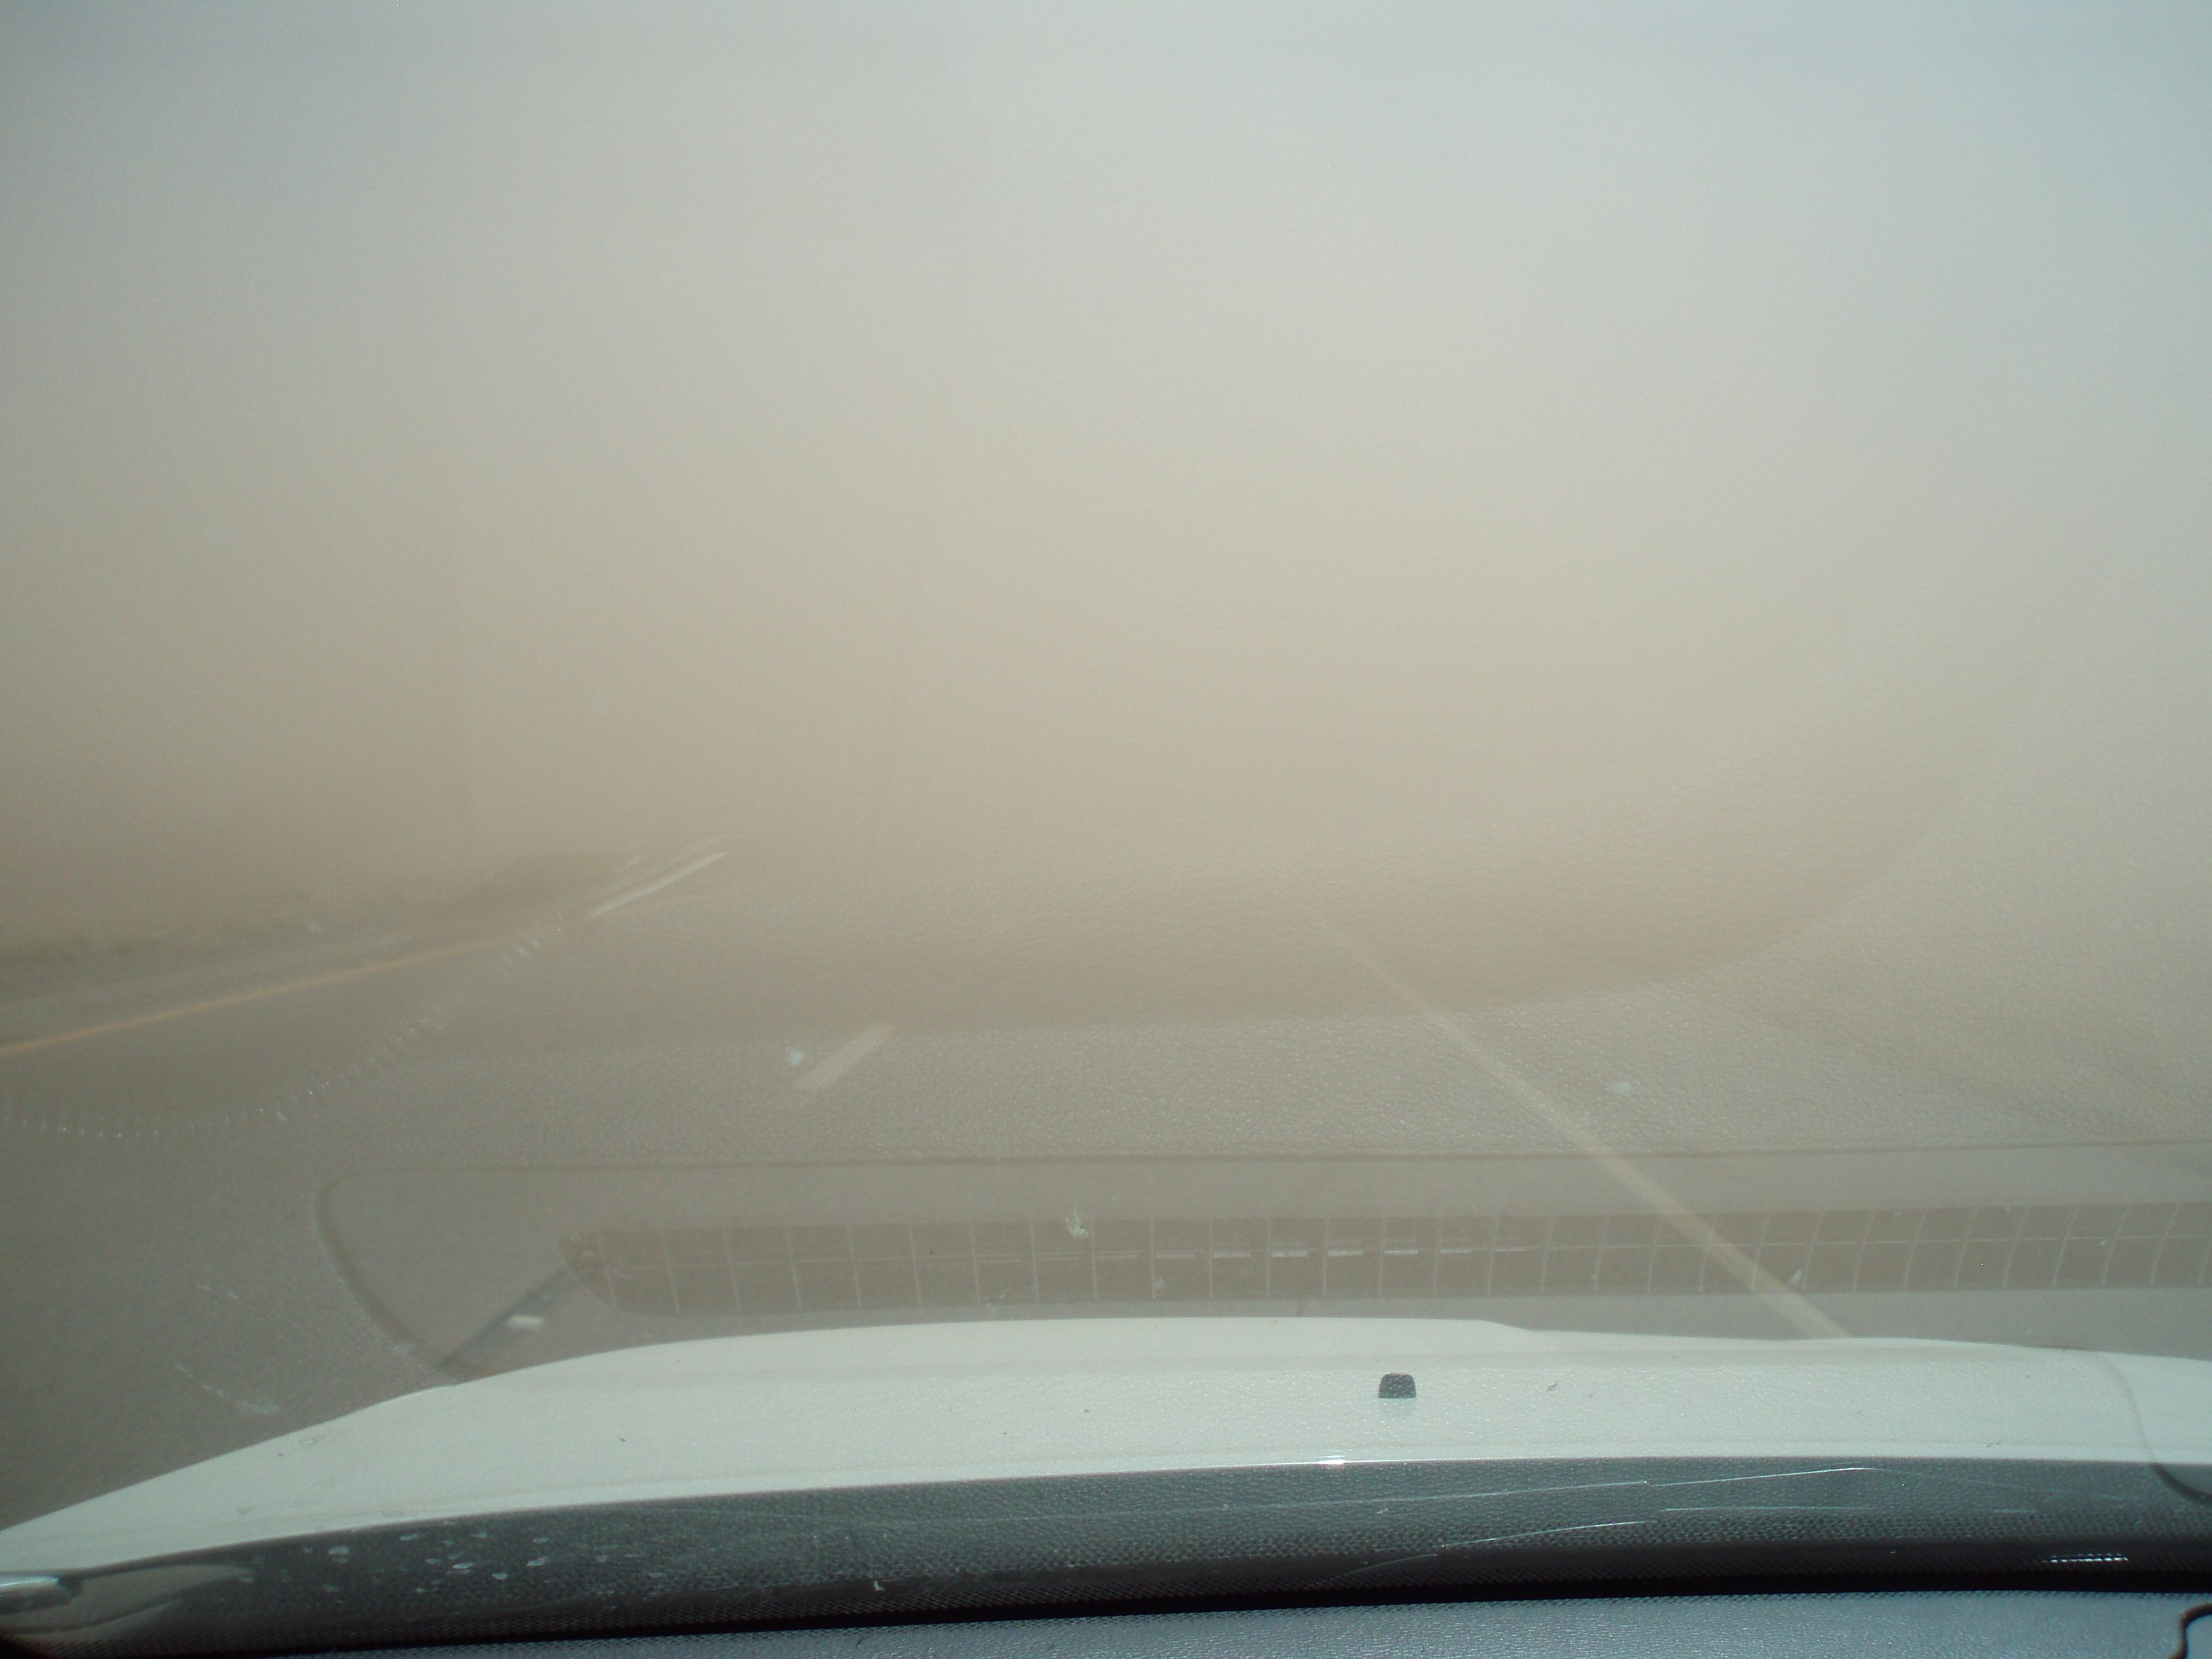 The photos show a progression of limited visibility due to blowing dusts and high winds in the area. (Source: ADOT)